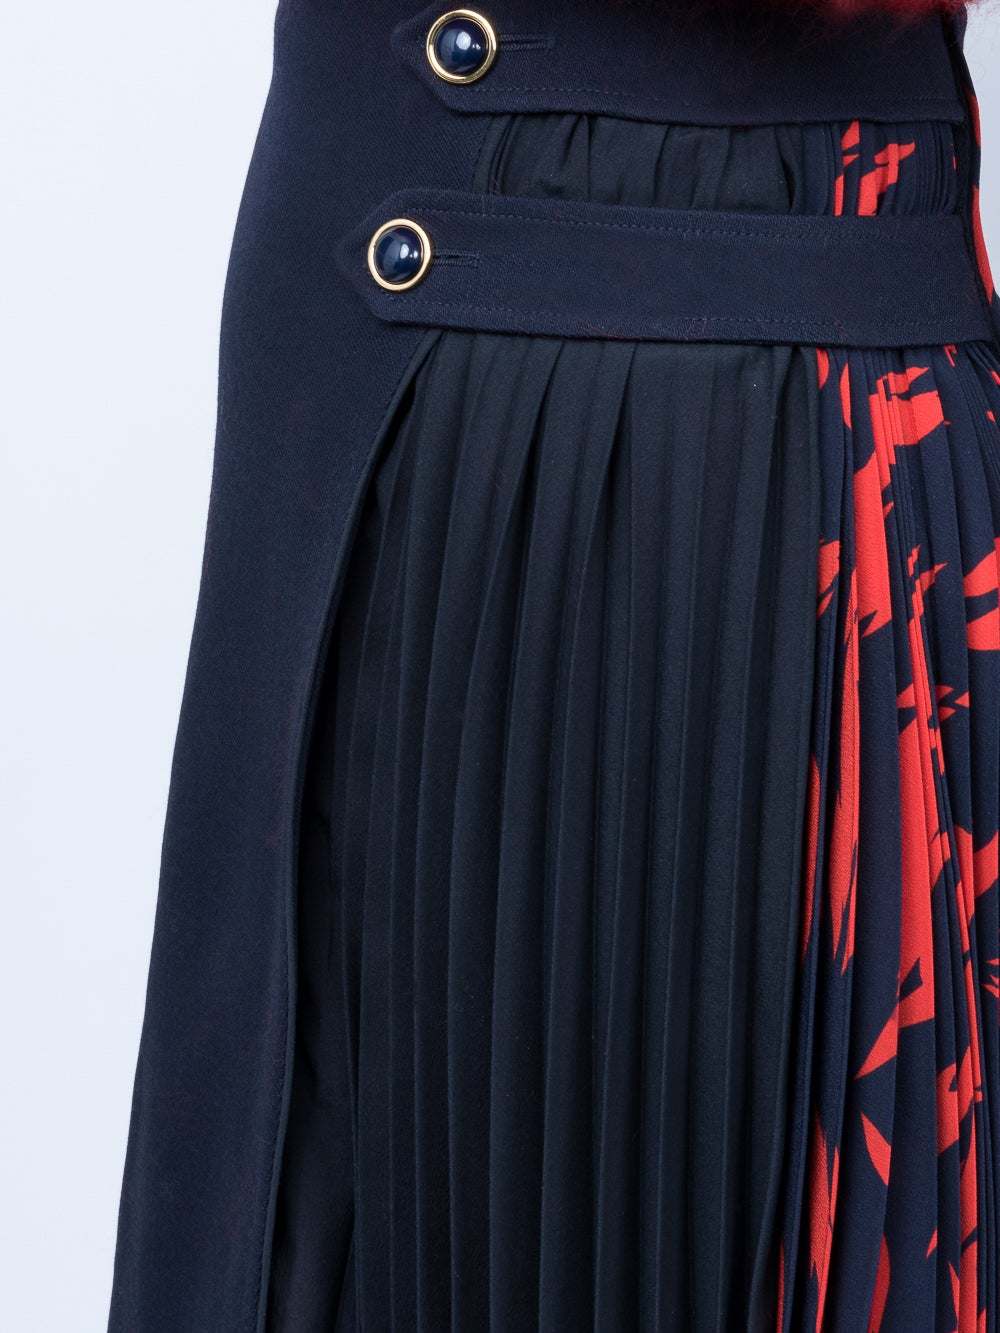 Blue Pleated Godet Mini Skirt